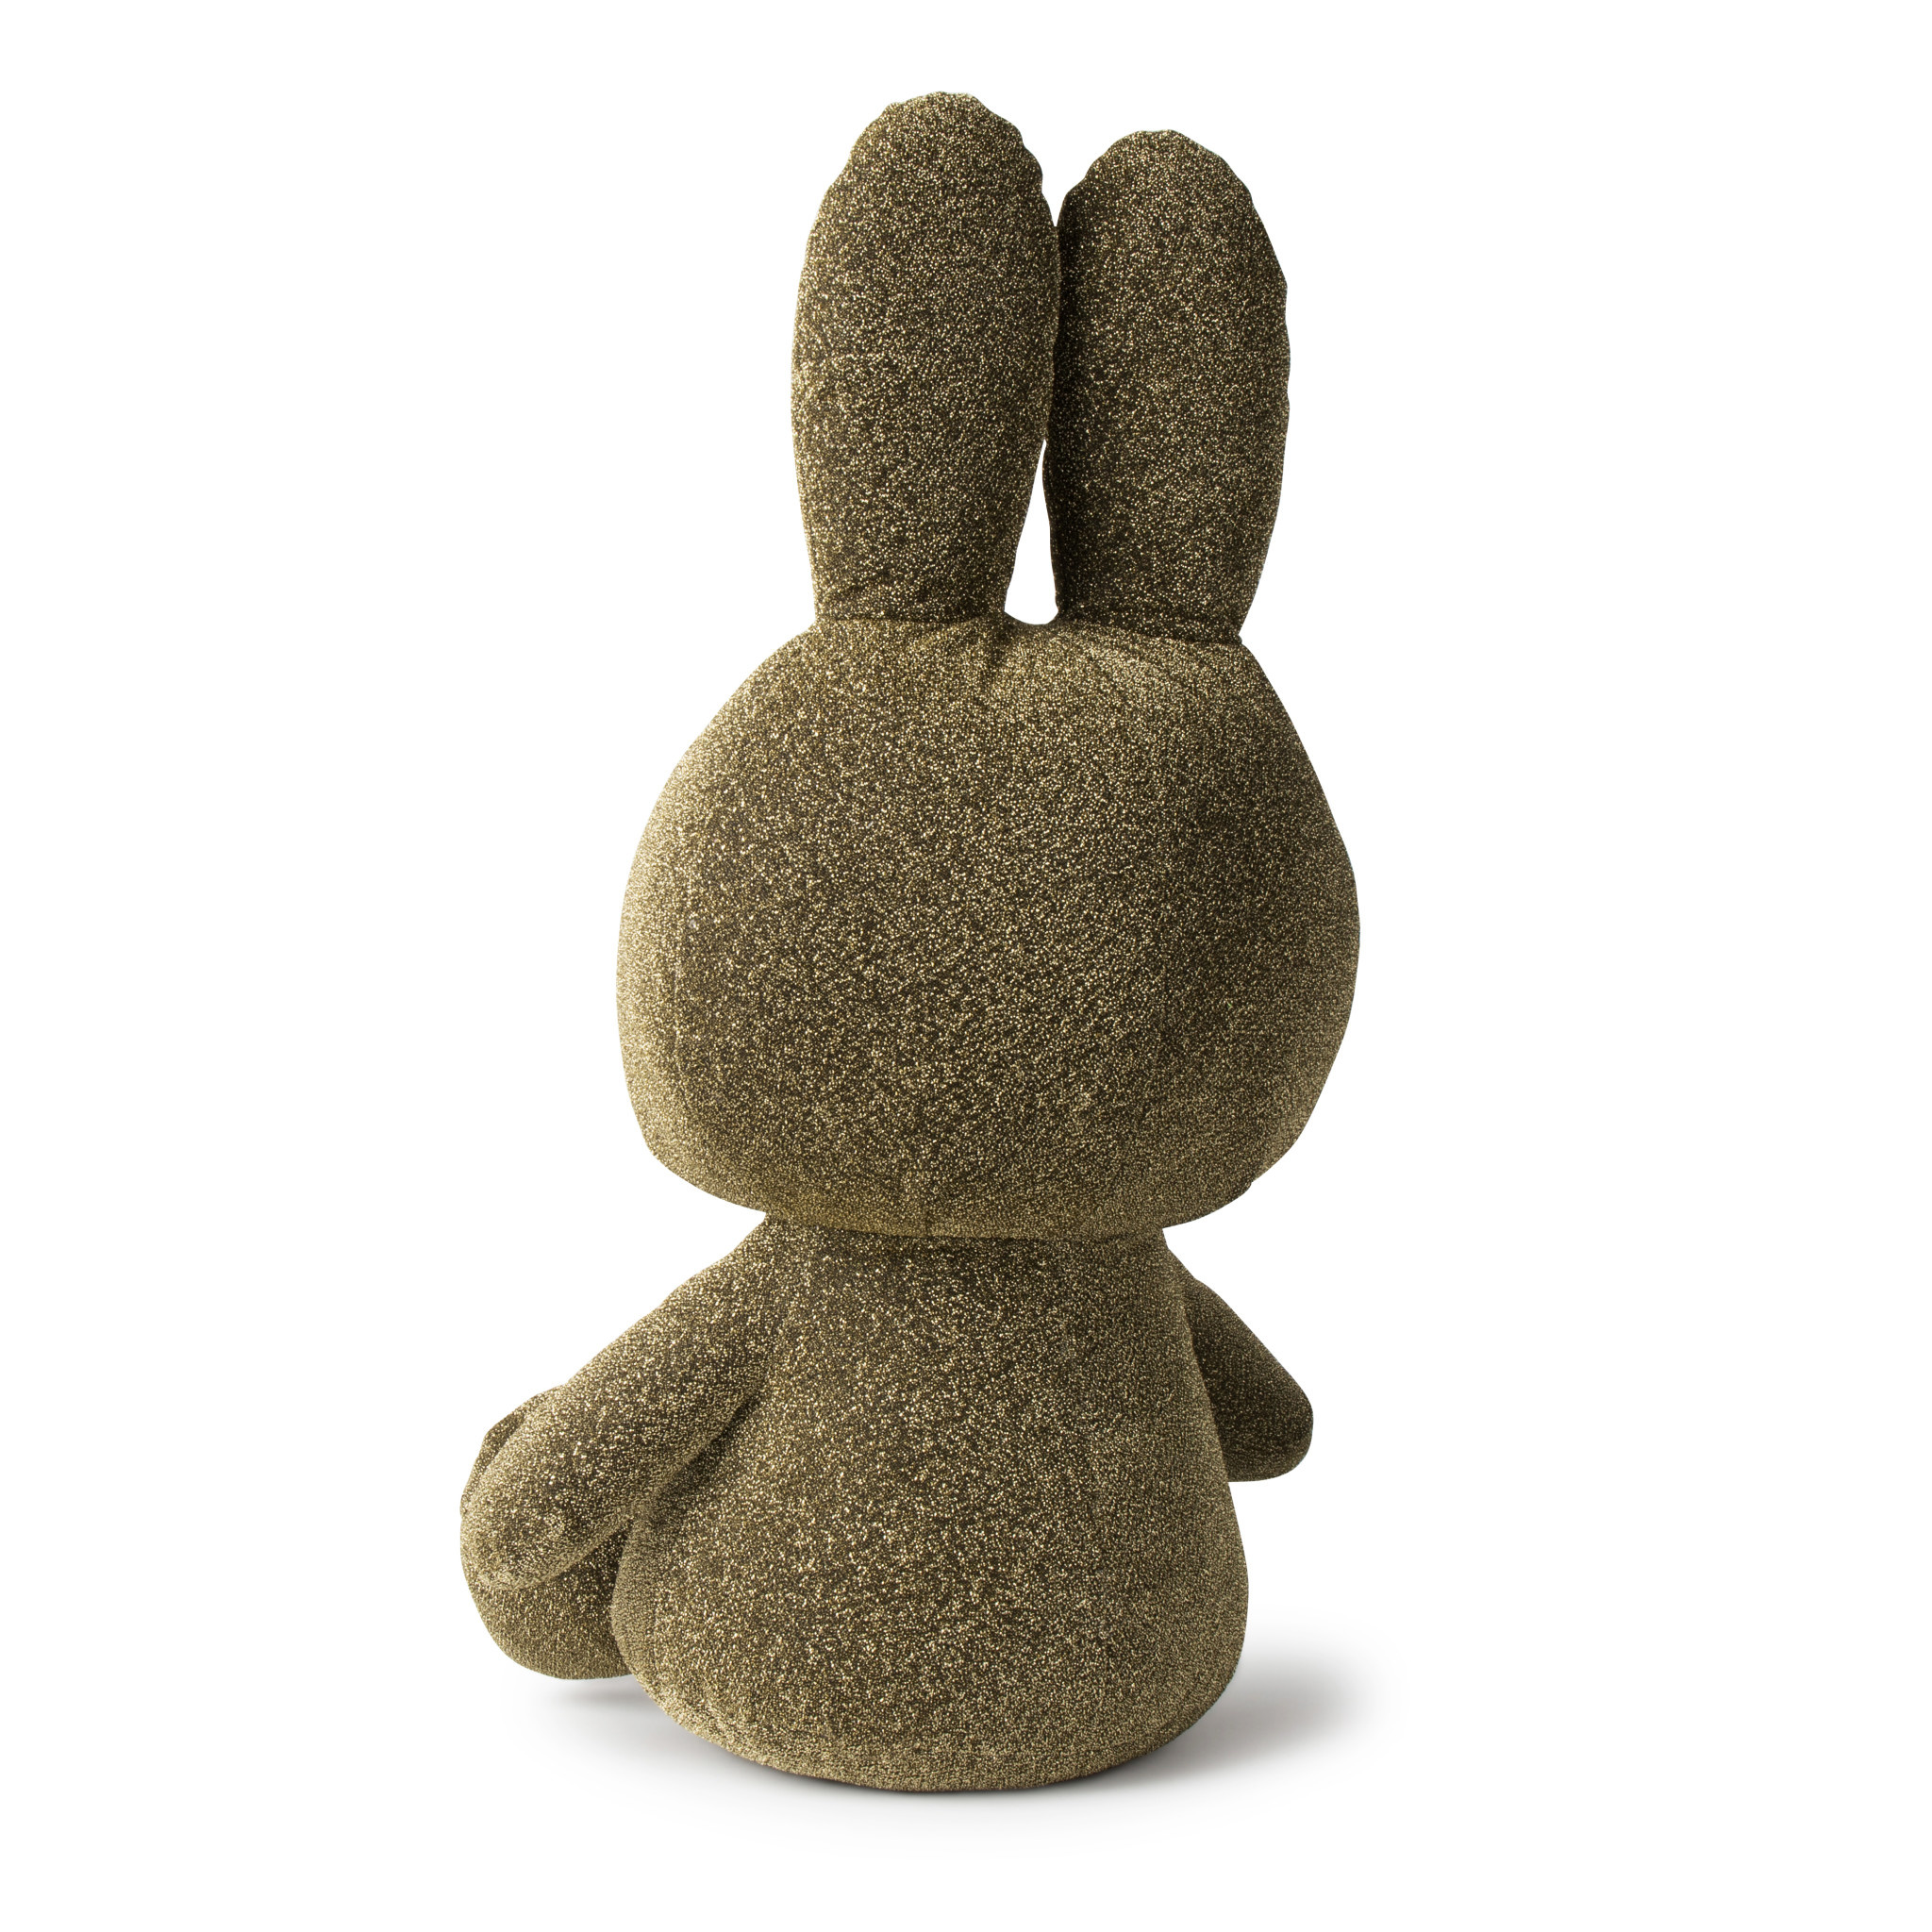 Miffy Sitting Sparkle Gold - 50 cm  Limited Edition